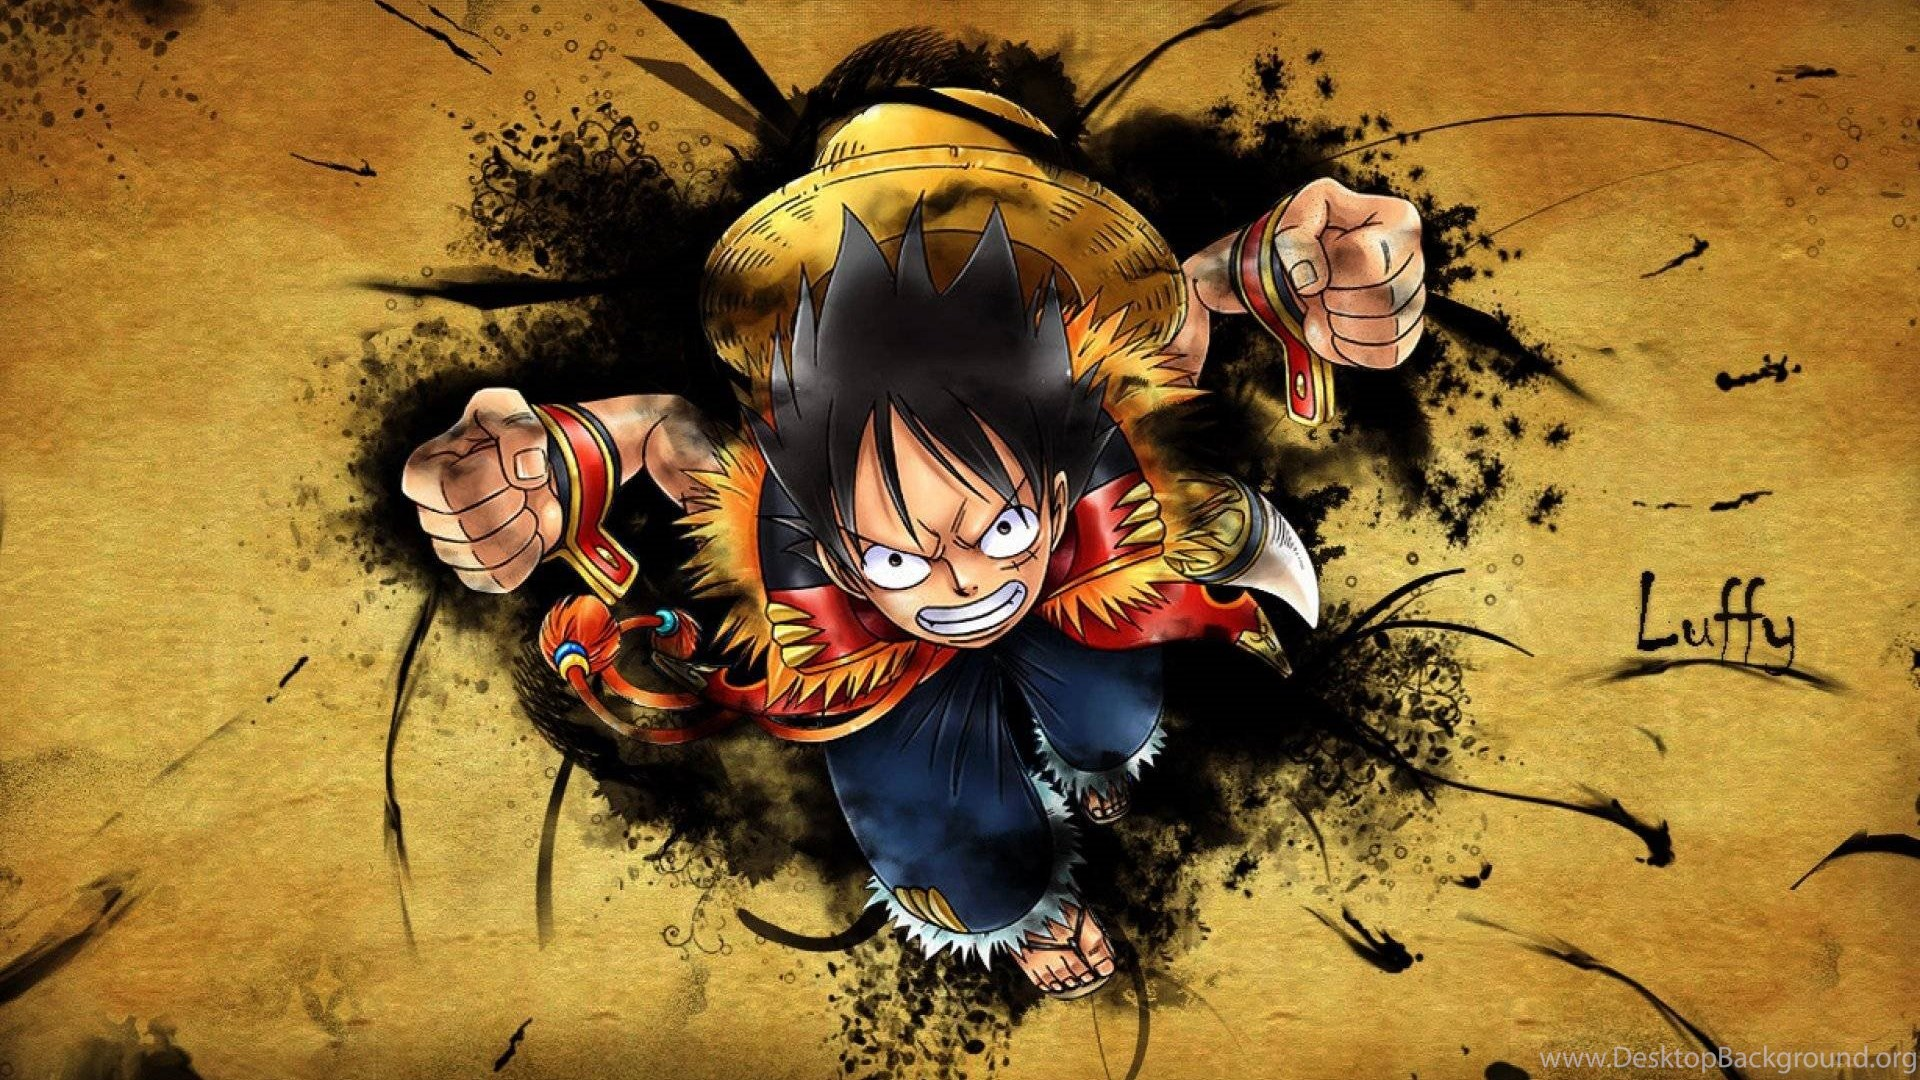 Anime Ipod Wallpapers One Piece Luffy Wallpapers High Quality 10826 Hd